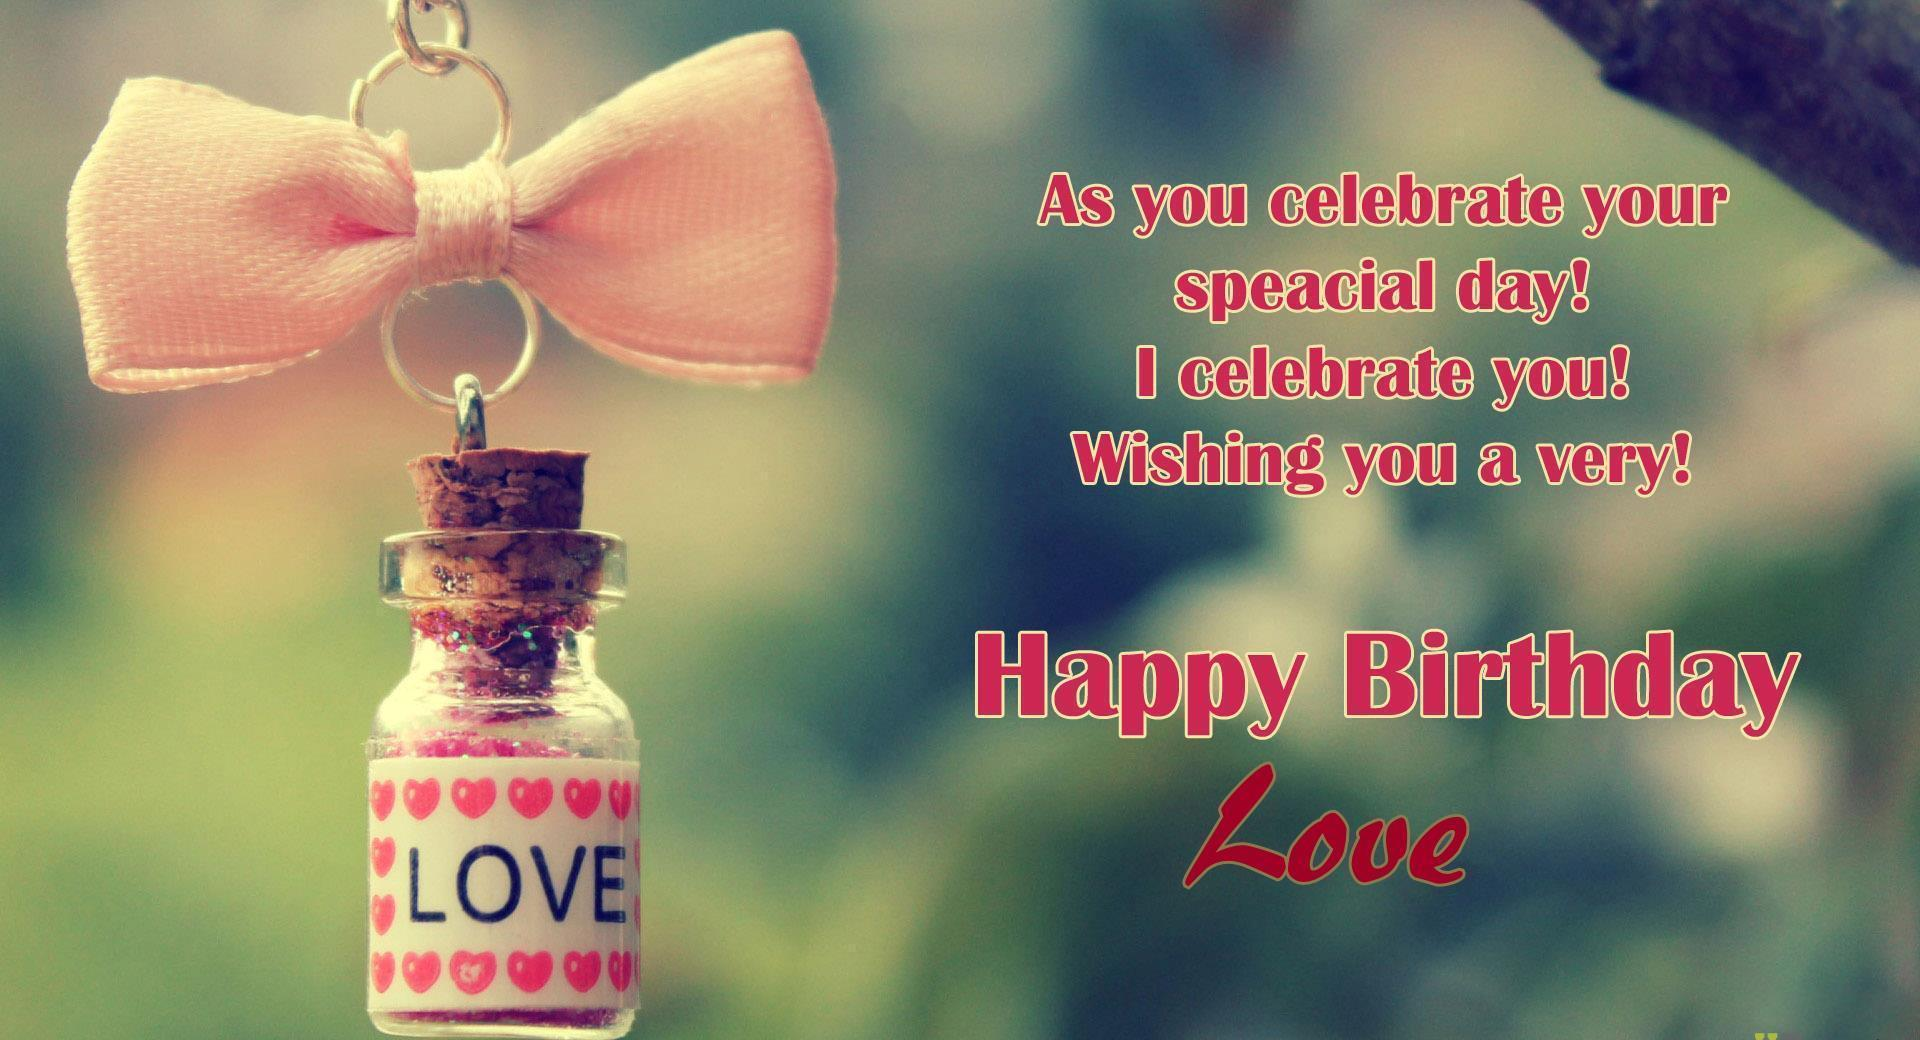 birthday hd images with quotes ; IoMlmfd